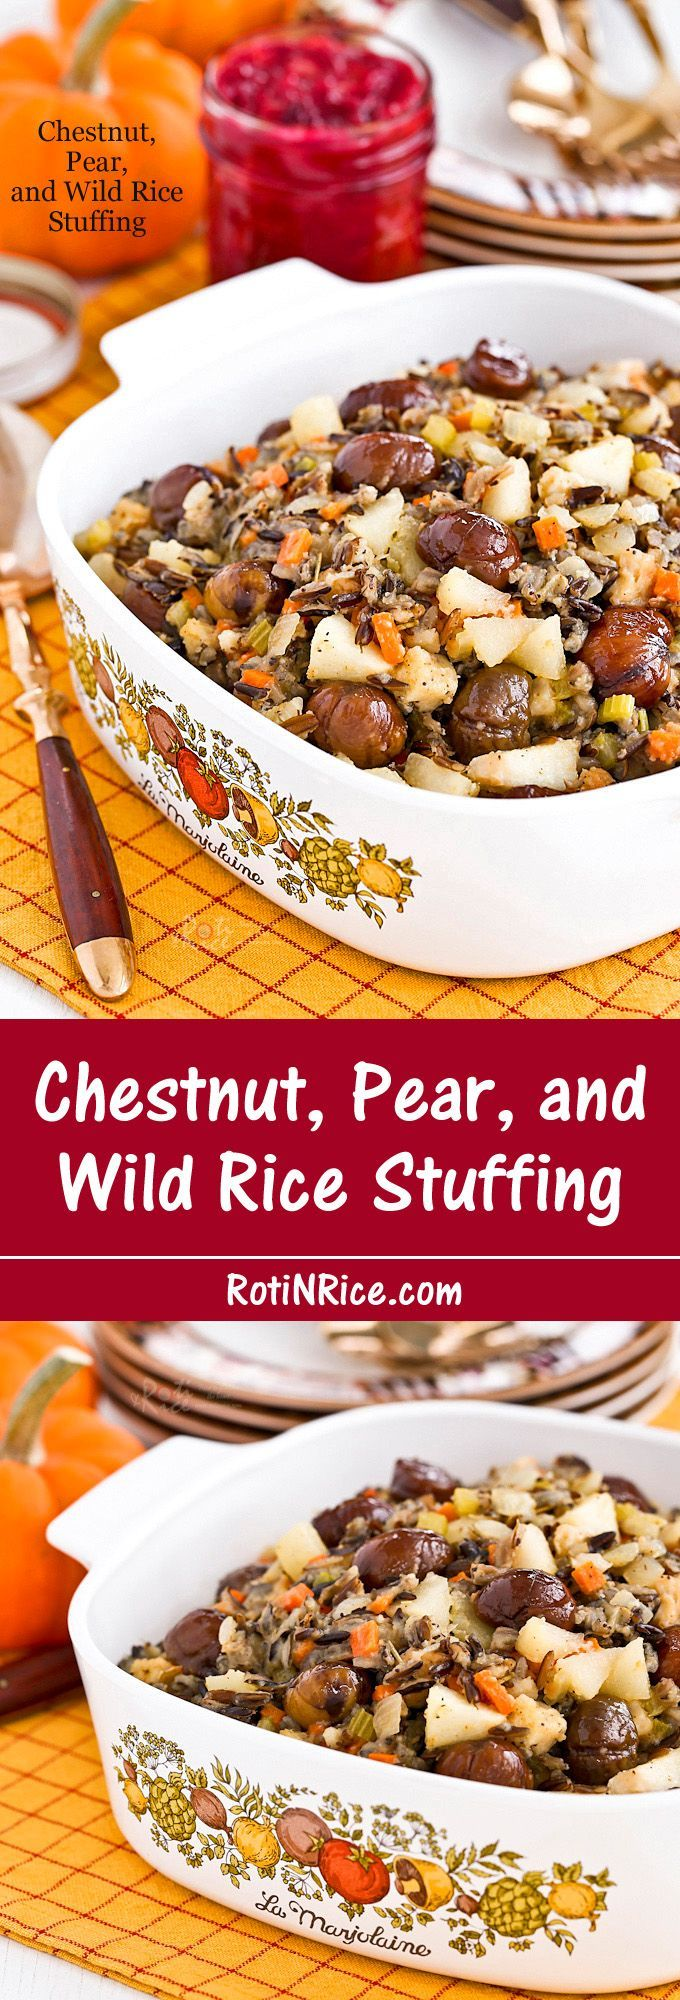 This delicious Chestnut, Pear, and Wild Rice Stuffing is one I have made year after year. It brings all the flavors of the holiday and season together. | http://RotiNRice.com